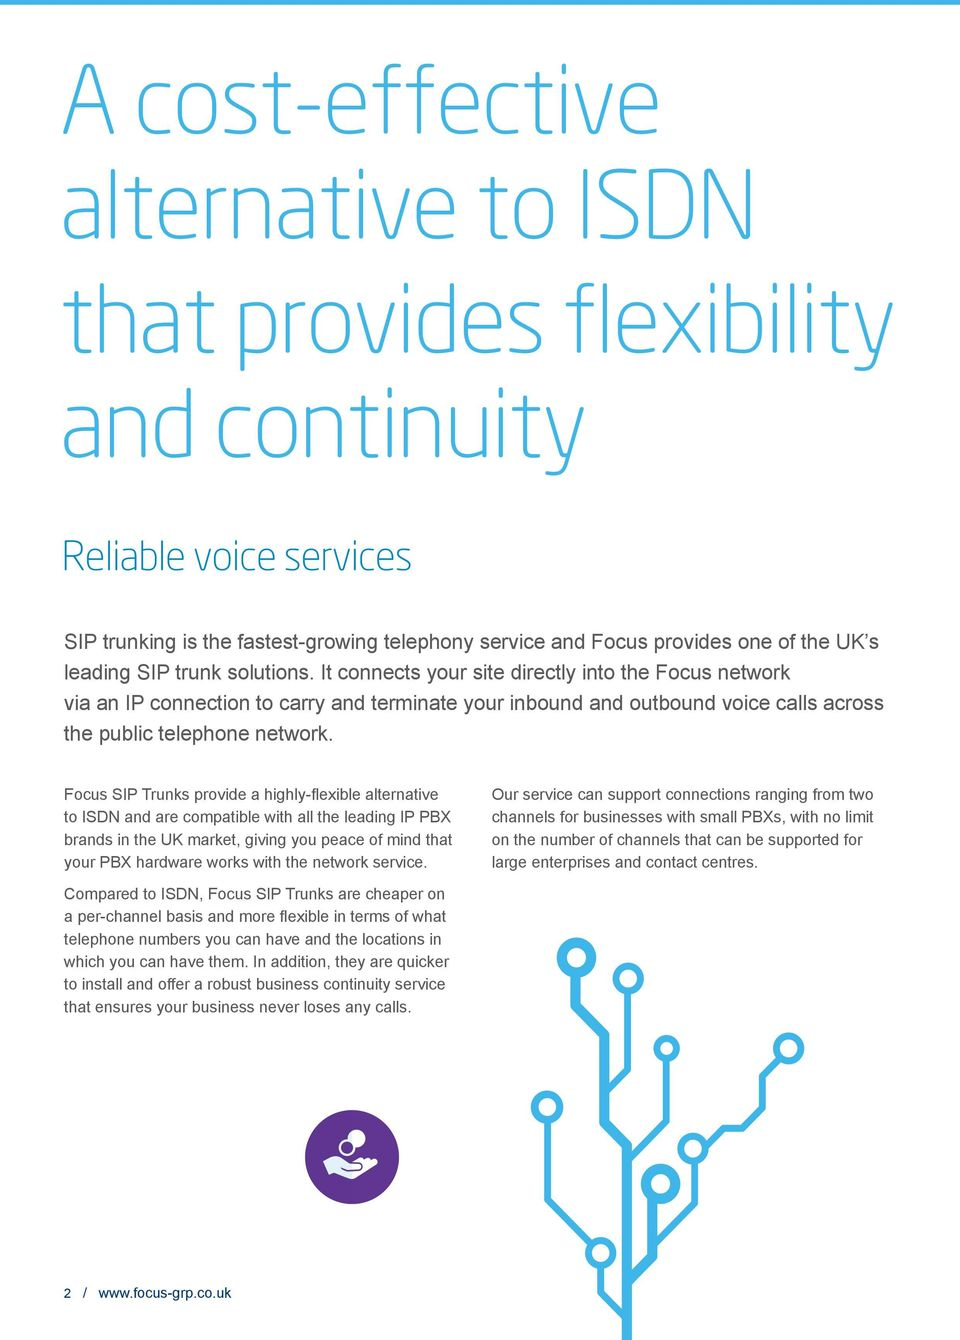 Focus SIP Trunks provide a highly-flexible alternative to ISDN and are compatible with all the leading IP PBX brands in the UK market, giving you peace of mind that your PBX hardware works with the